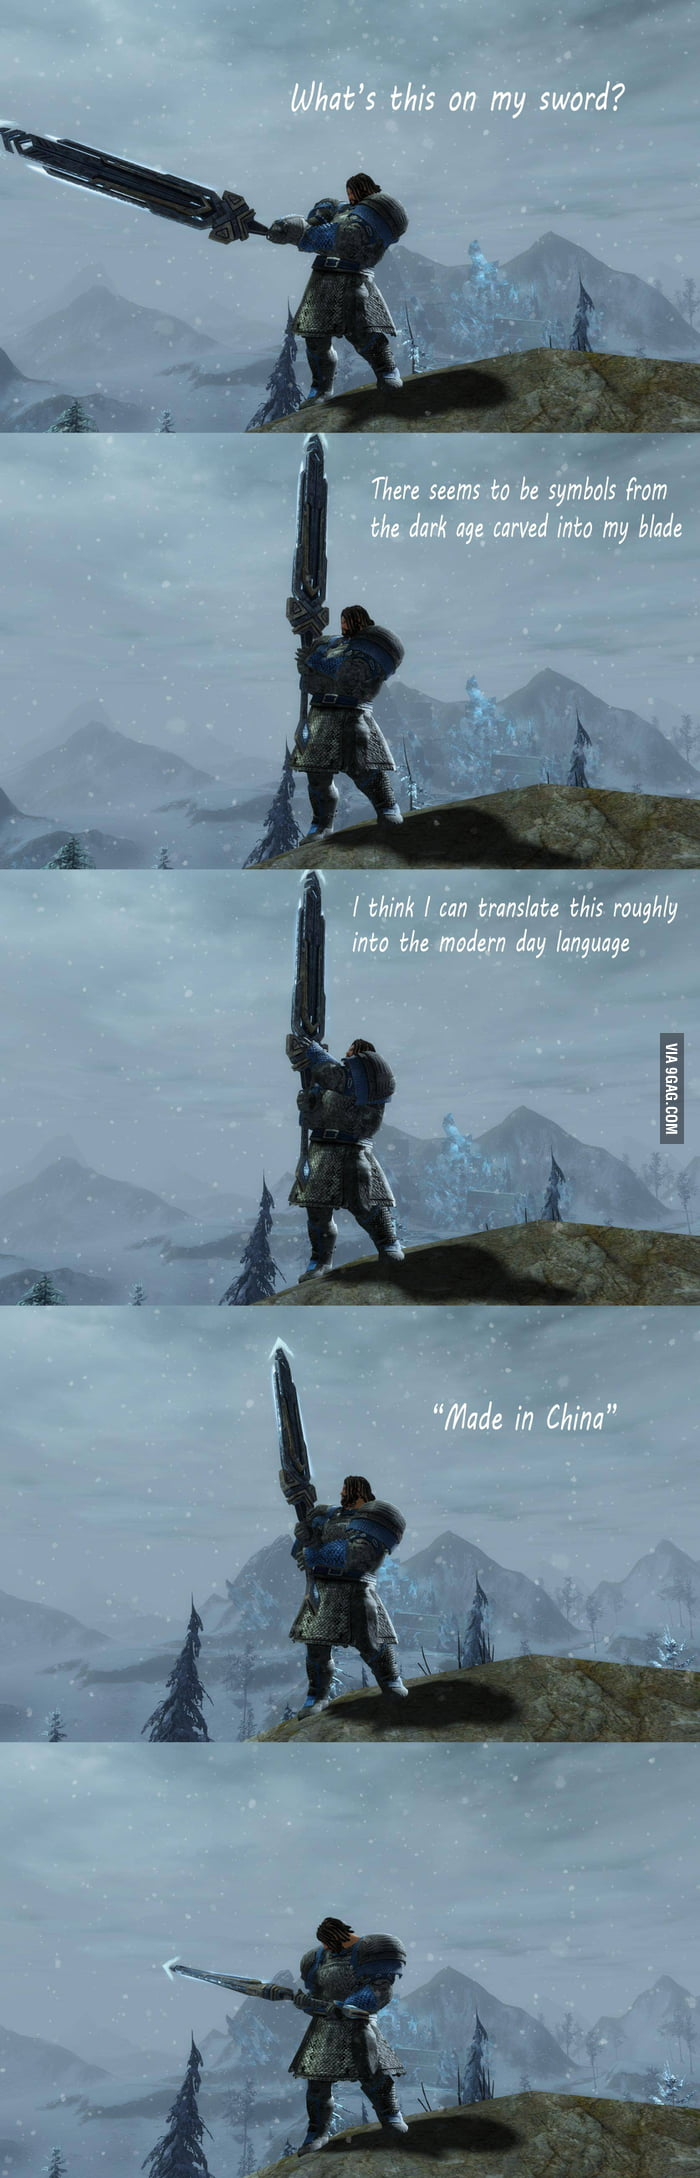 He found a sword which has some words on it...